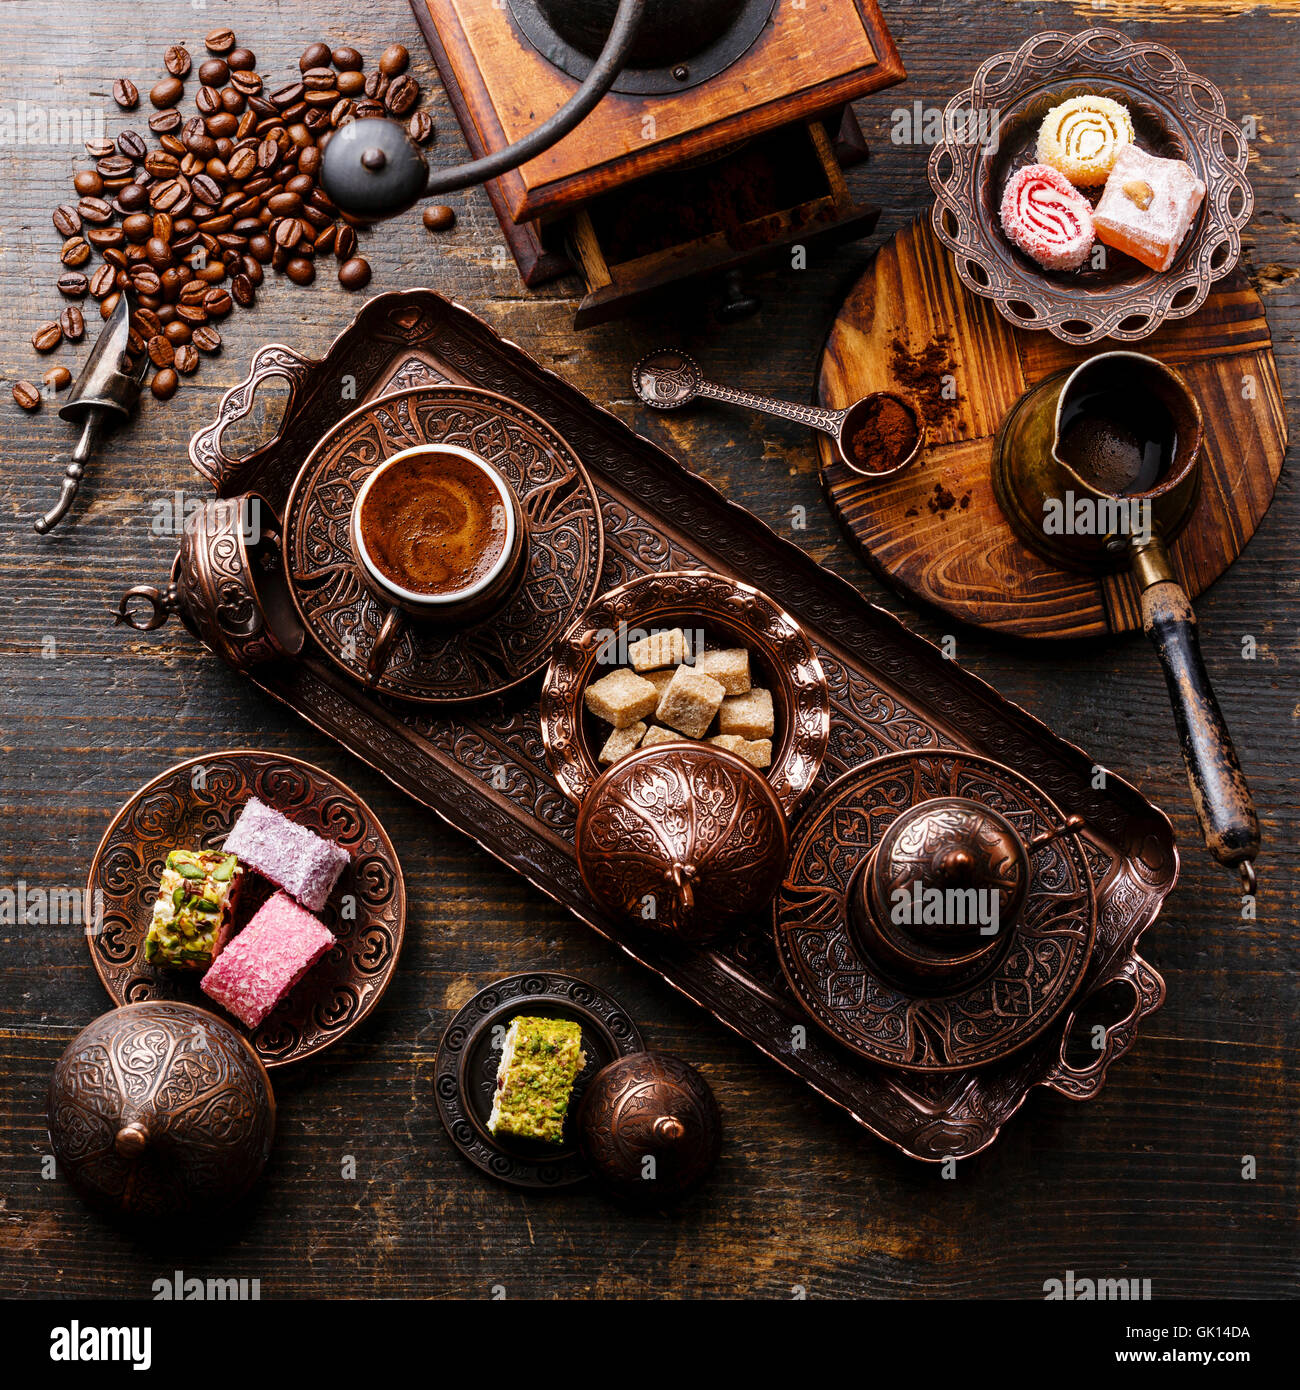 Coffee-east and Turkish Delight on copper tray on wooden background - Stock Image